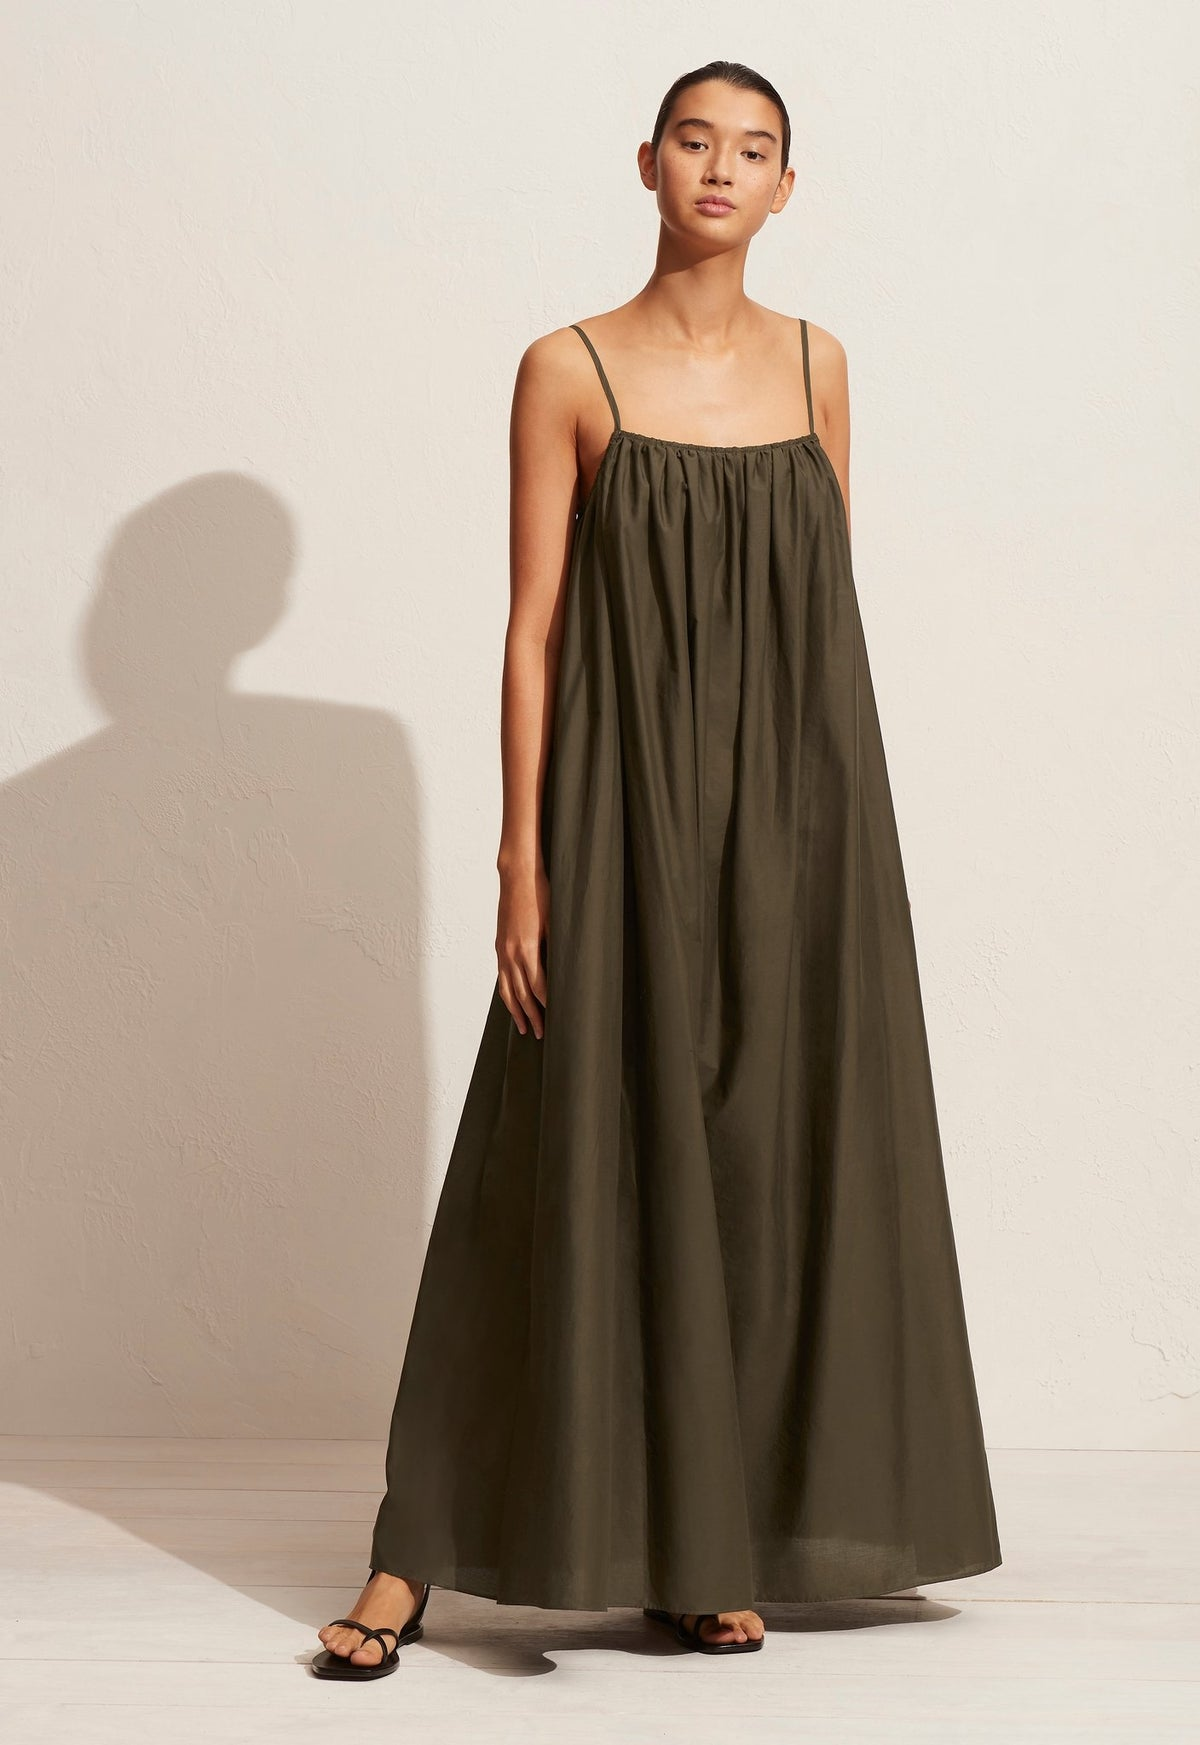 The Voluminous Sundress